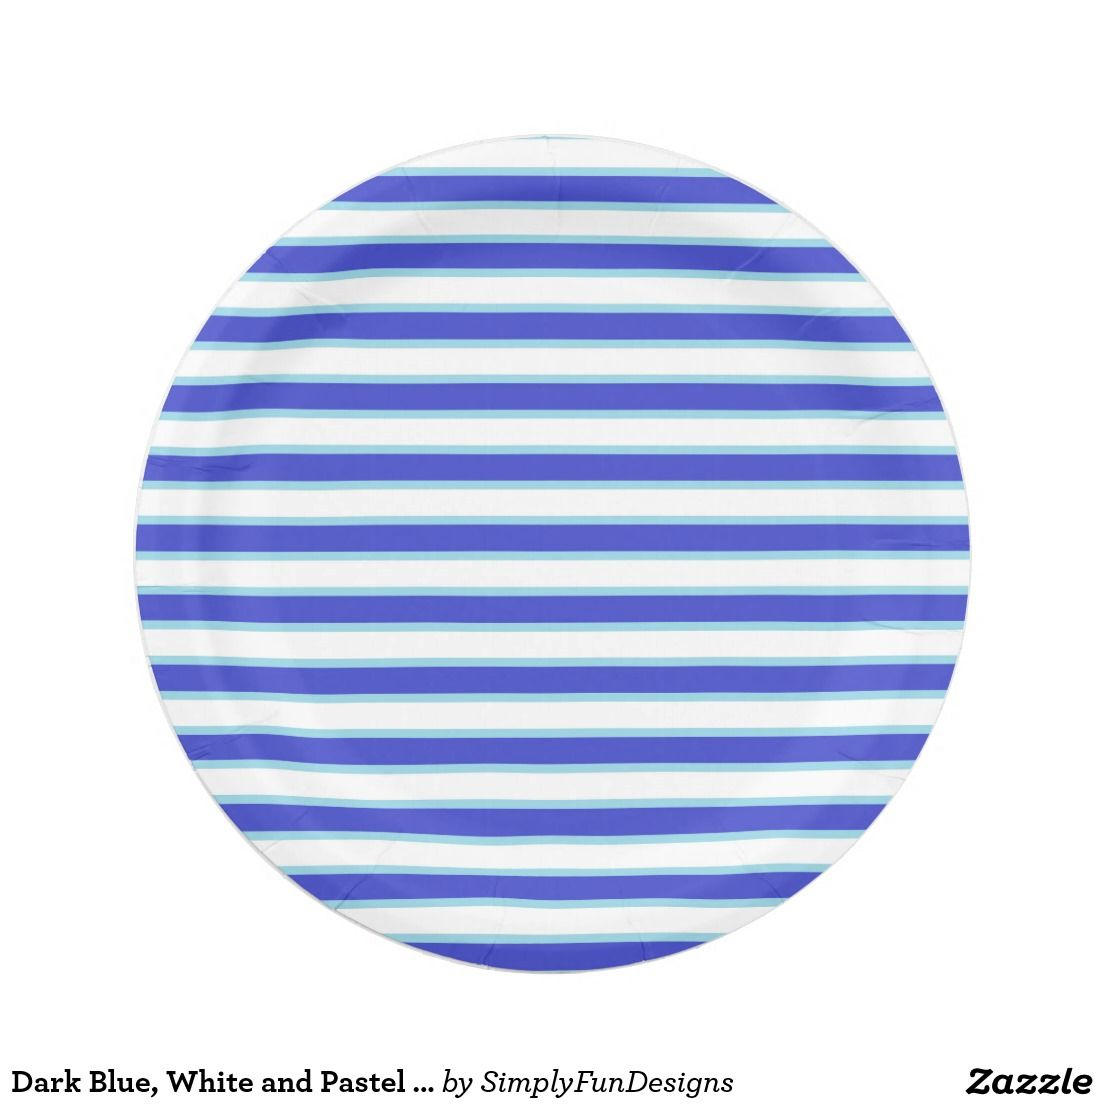 Dark Blue, White and Pastel Blue Stripes Paper Plate